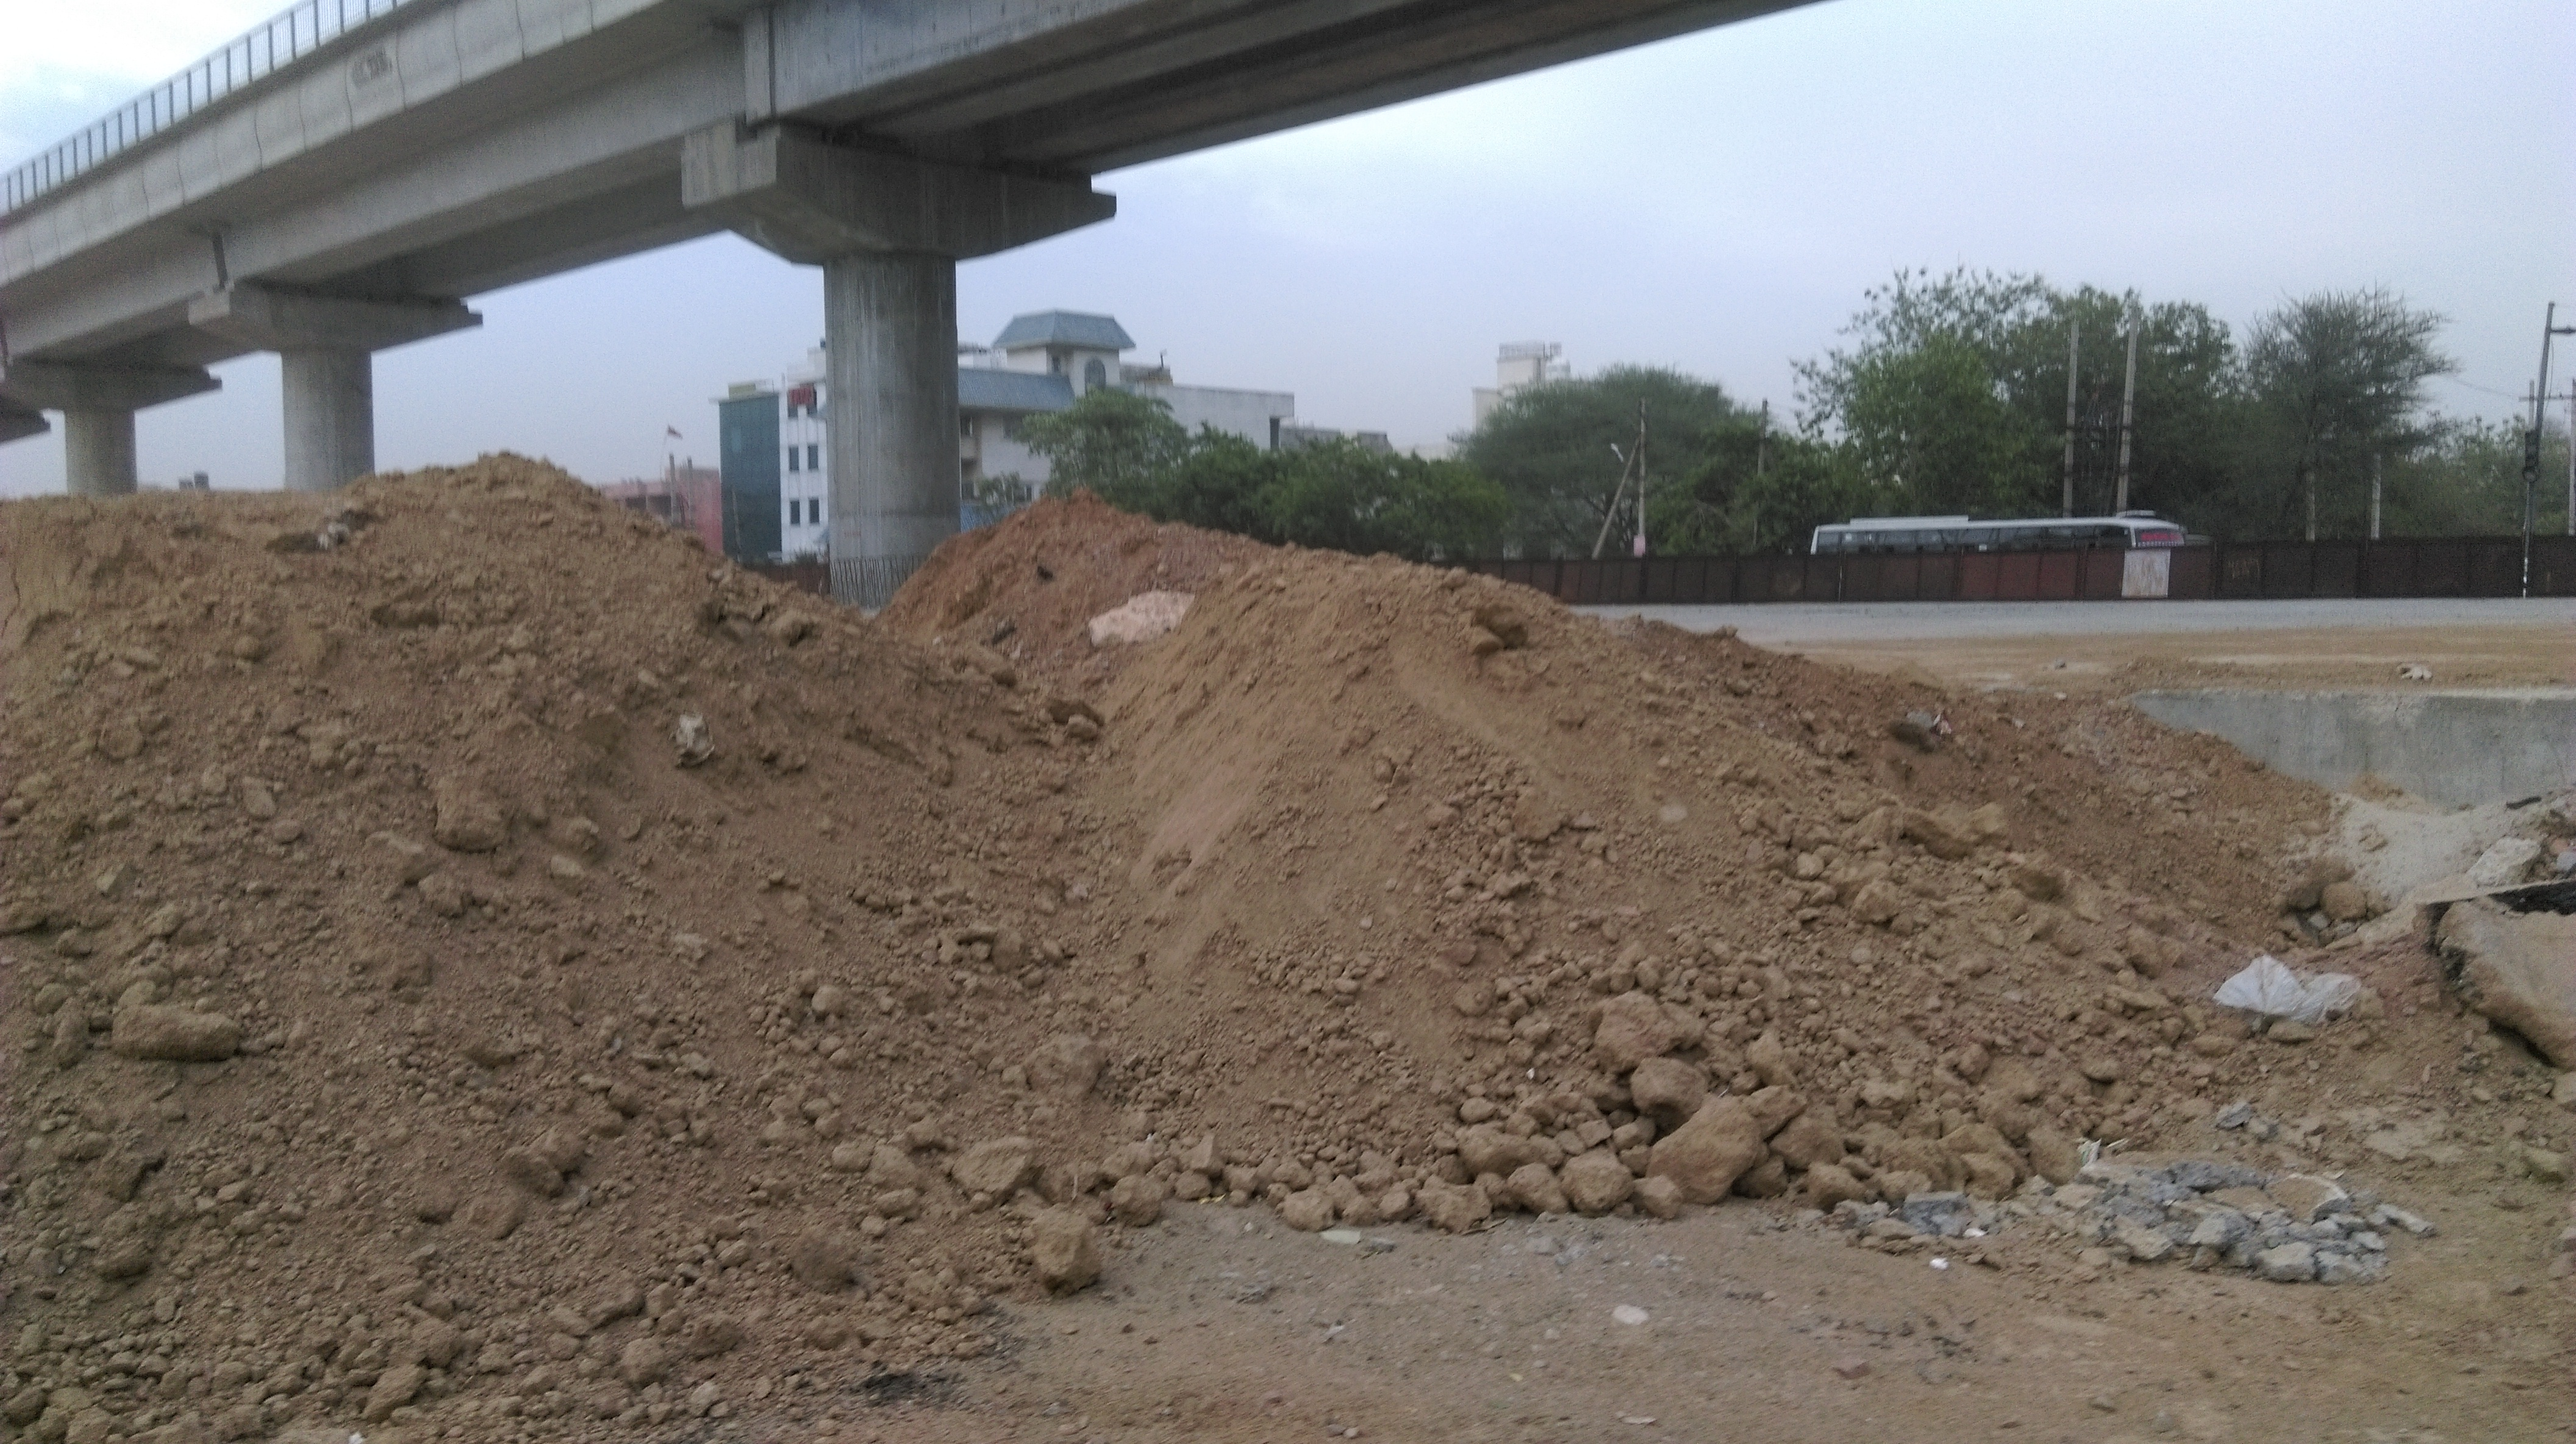 Mounts of debris along the road on Golf Course Gurgaon